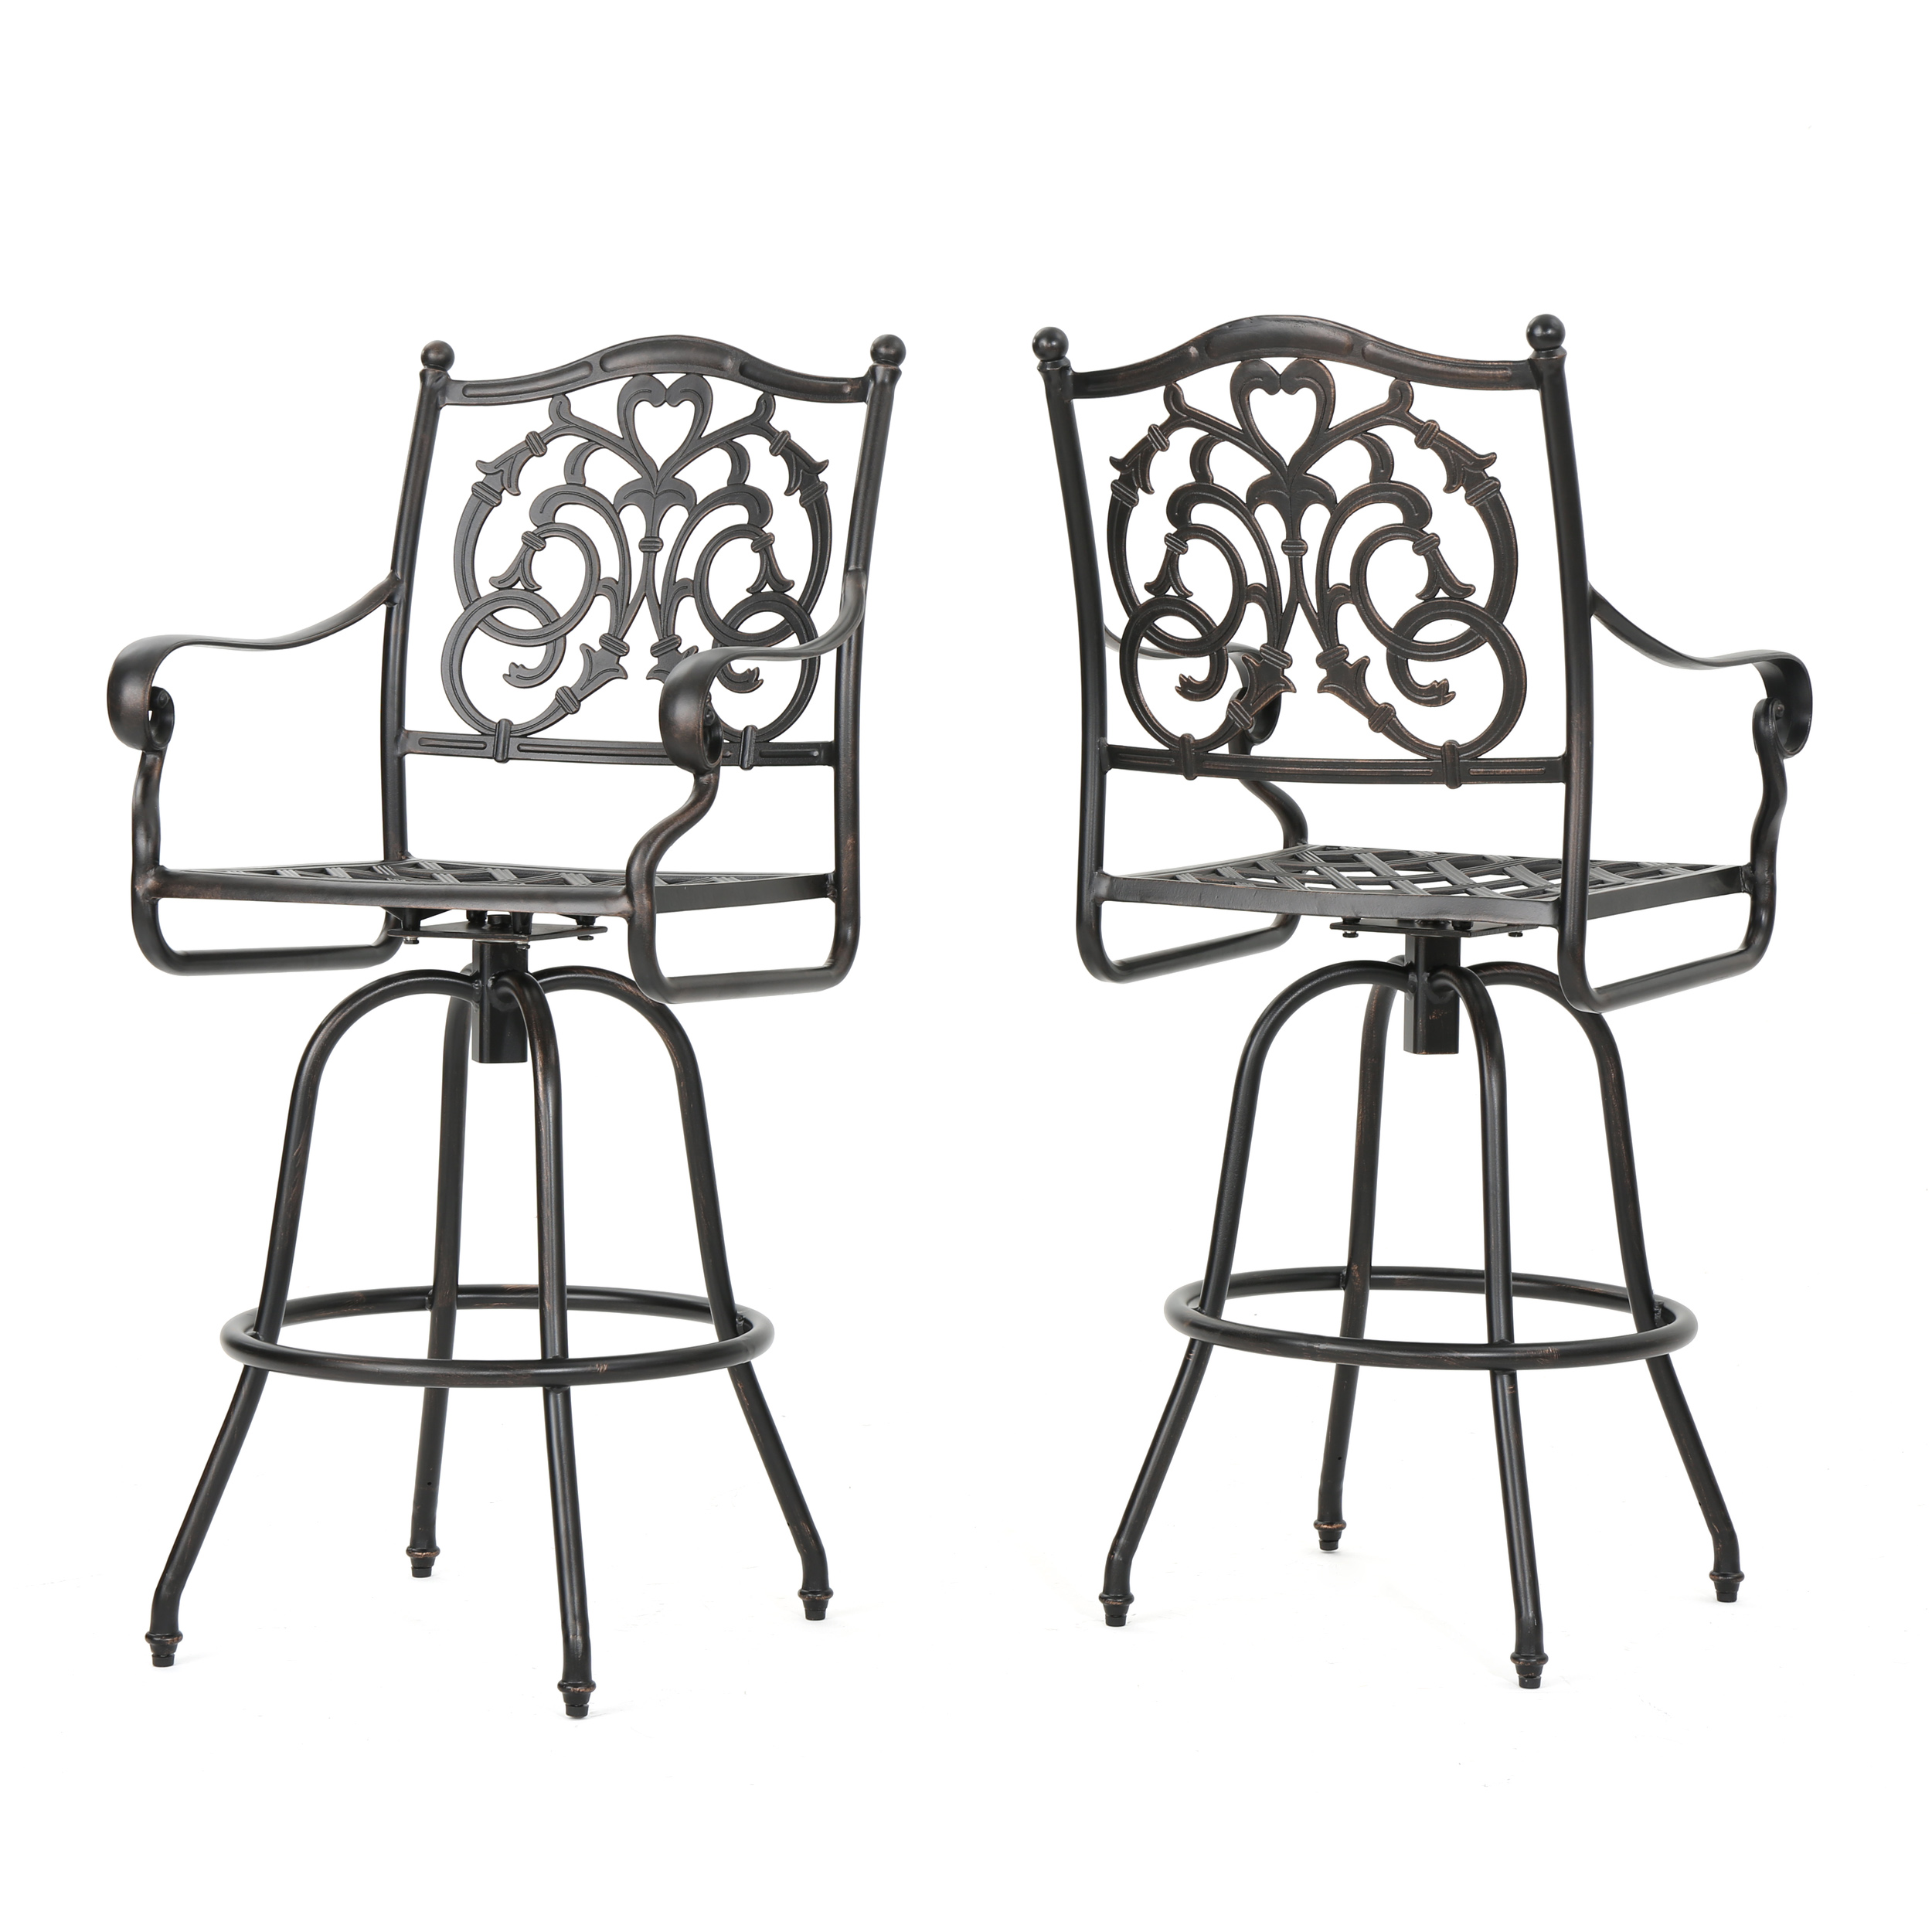 "Denise Austin Home Ridley Cast Aluminum Outdoor 29"" Bar Stool (Set of 2)"